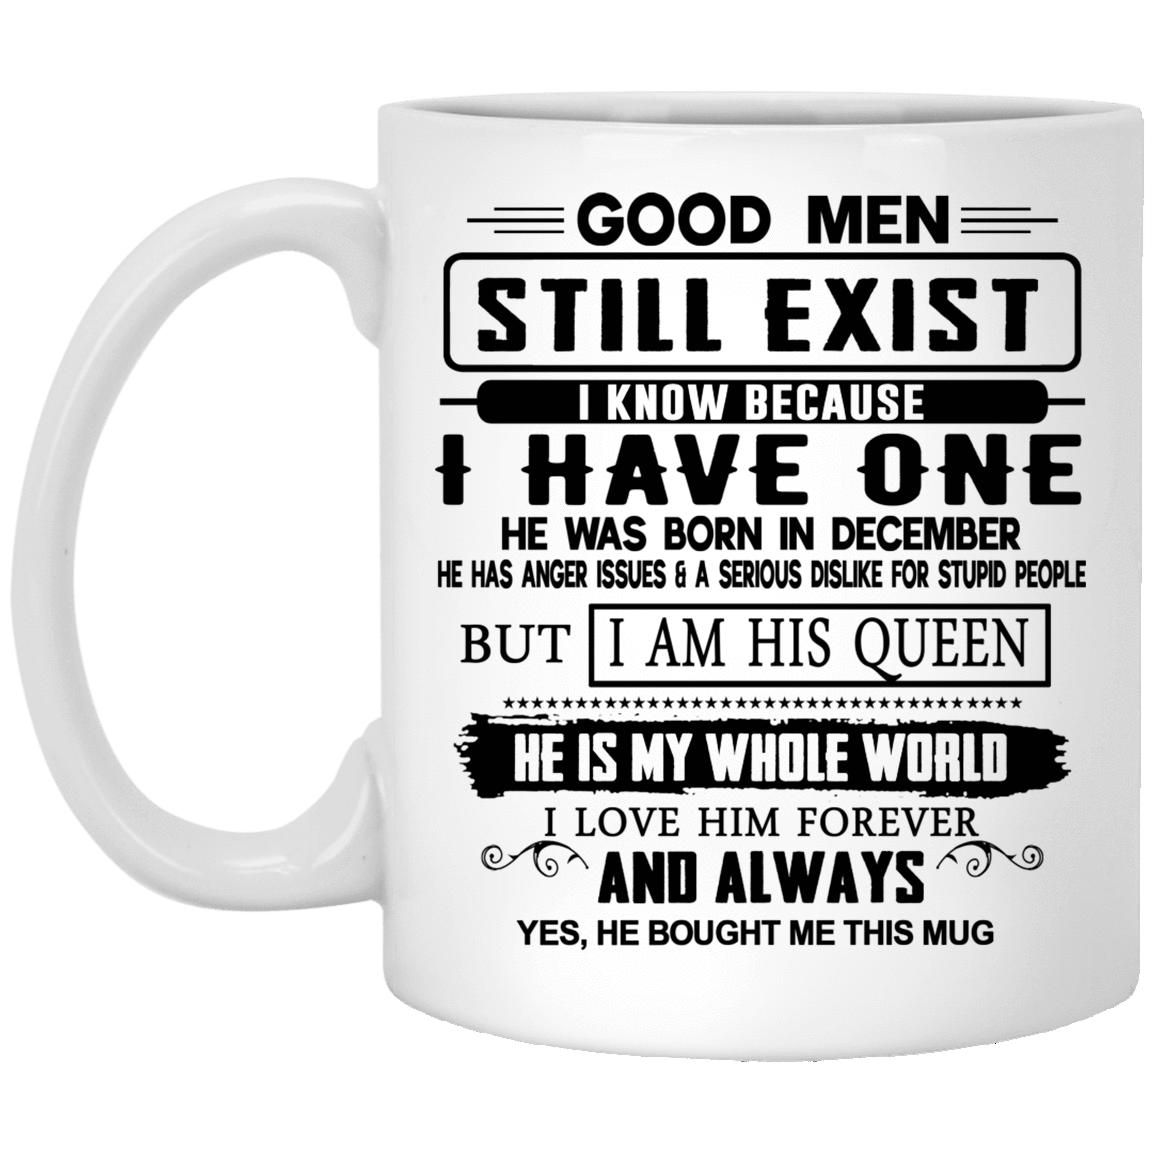 Good Men Still Exist I Have One He Was Born In December Mug 1005-9786-76399494-47417 - Tee Ript